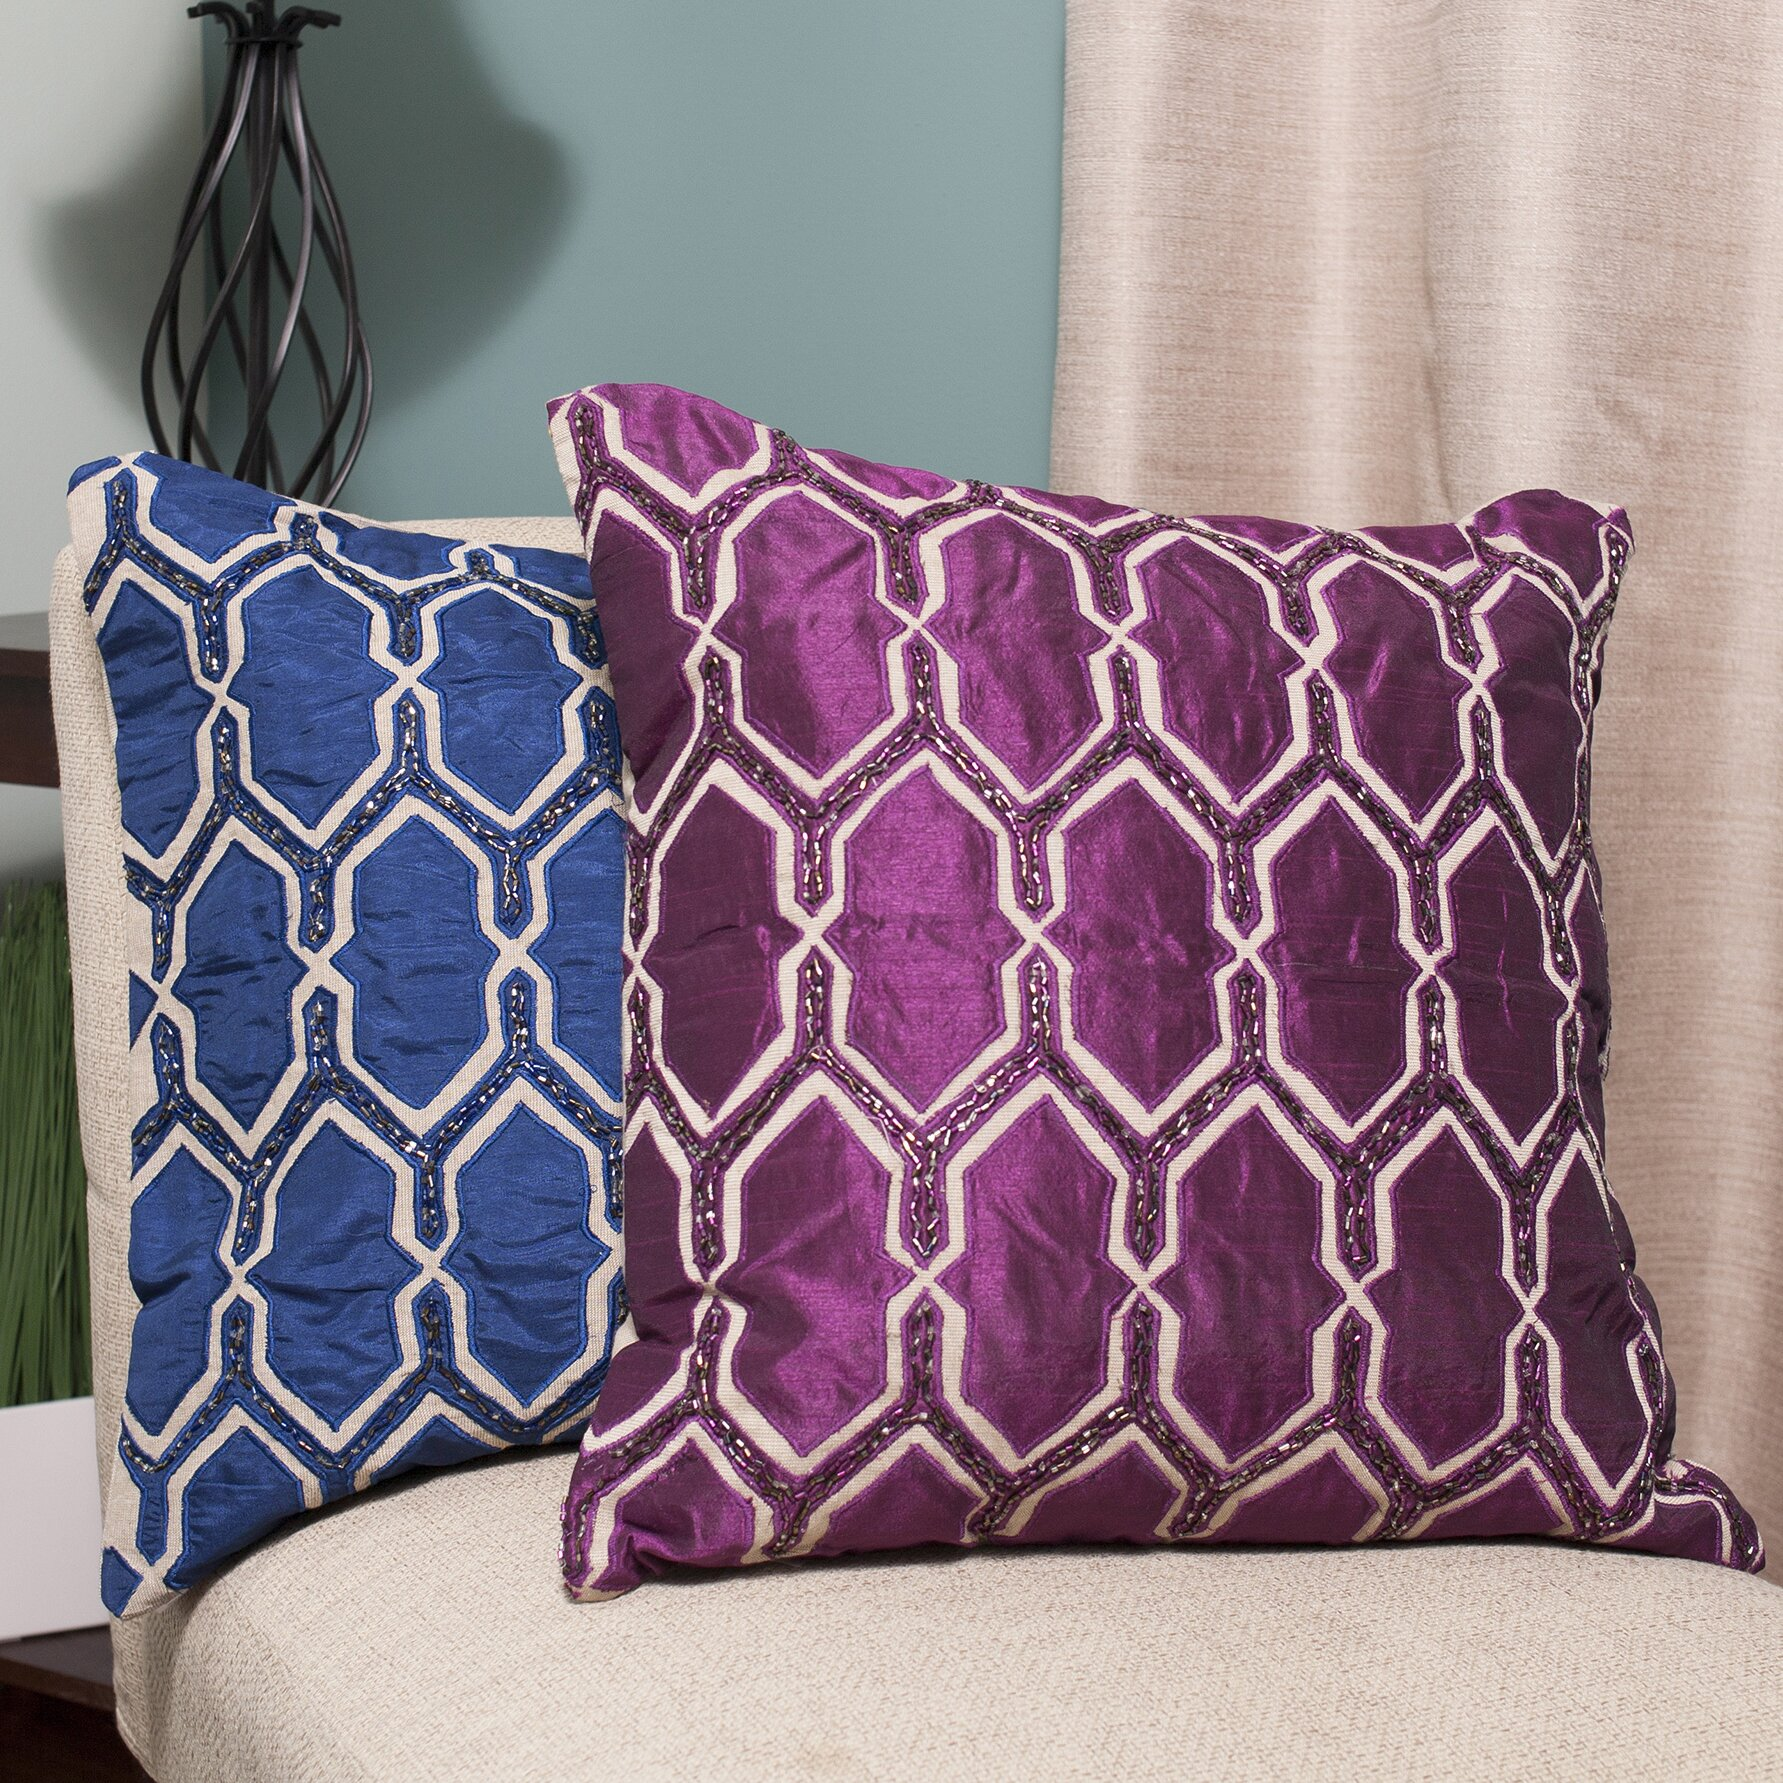 Luxury Decorative Pillow Collection : Sweet Home Collection Luxury Zippered Beaded Decorative Throw Pillow Wayfair